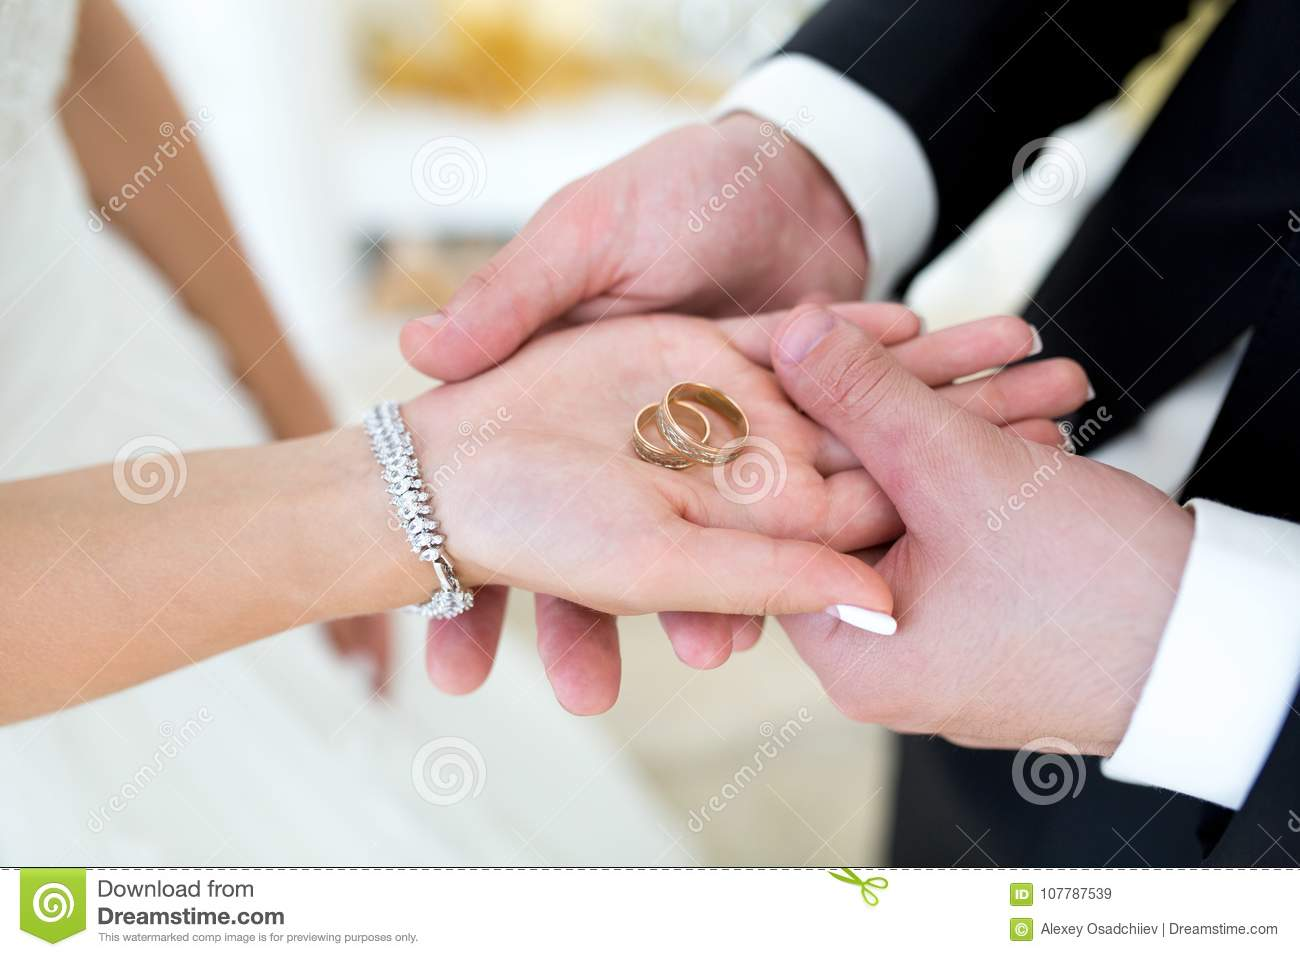 Man woman hands stock image. Image of fingers, contrast - 107787539